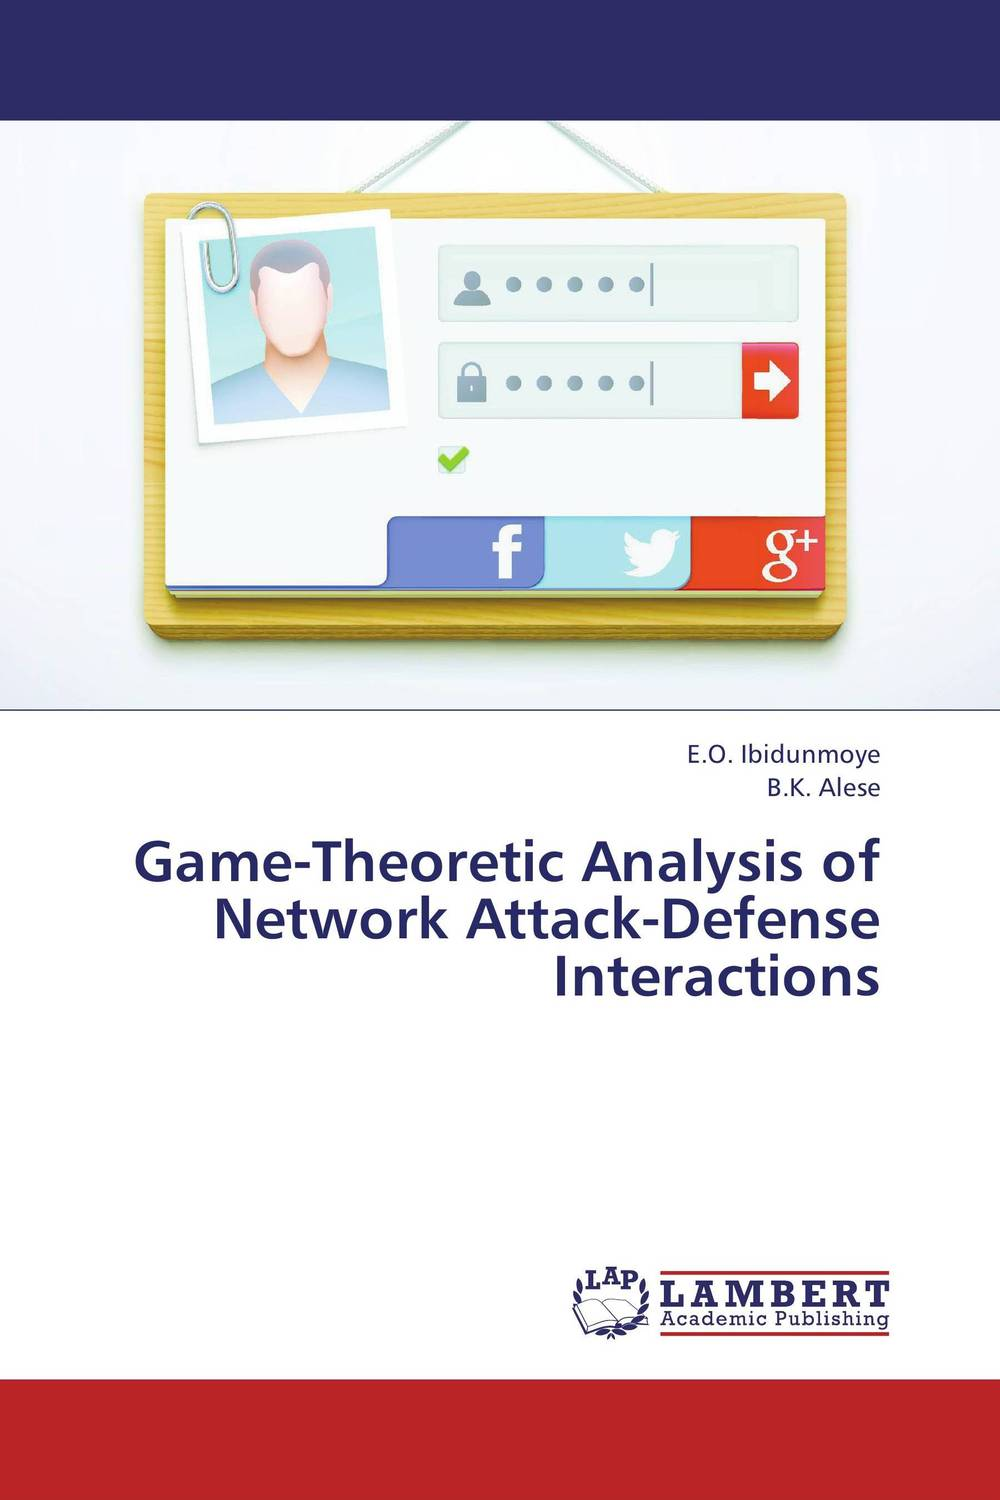 Game-Theoretic Analysis of Network Attack-Defense Interactions briar mitchell lee game design essentials